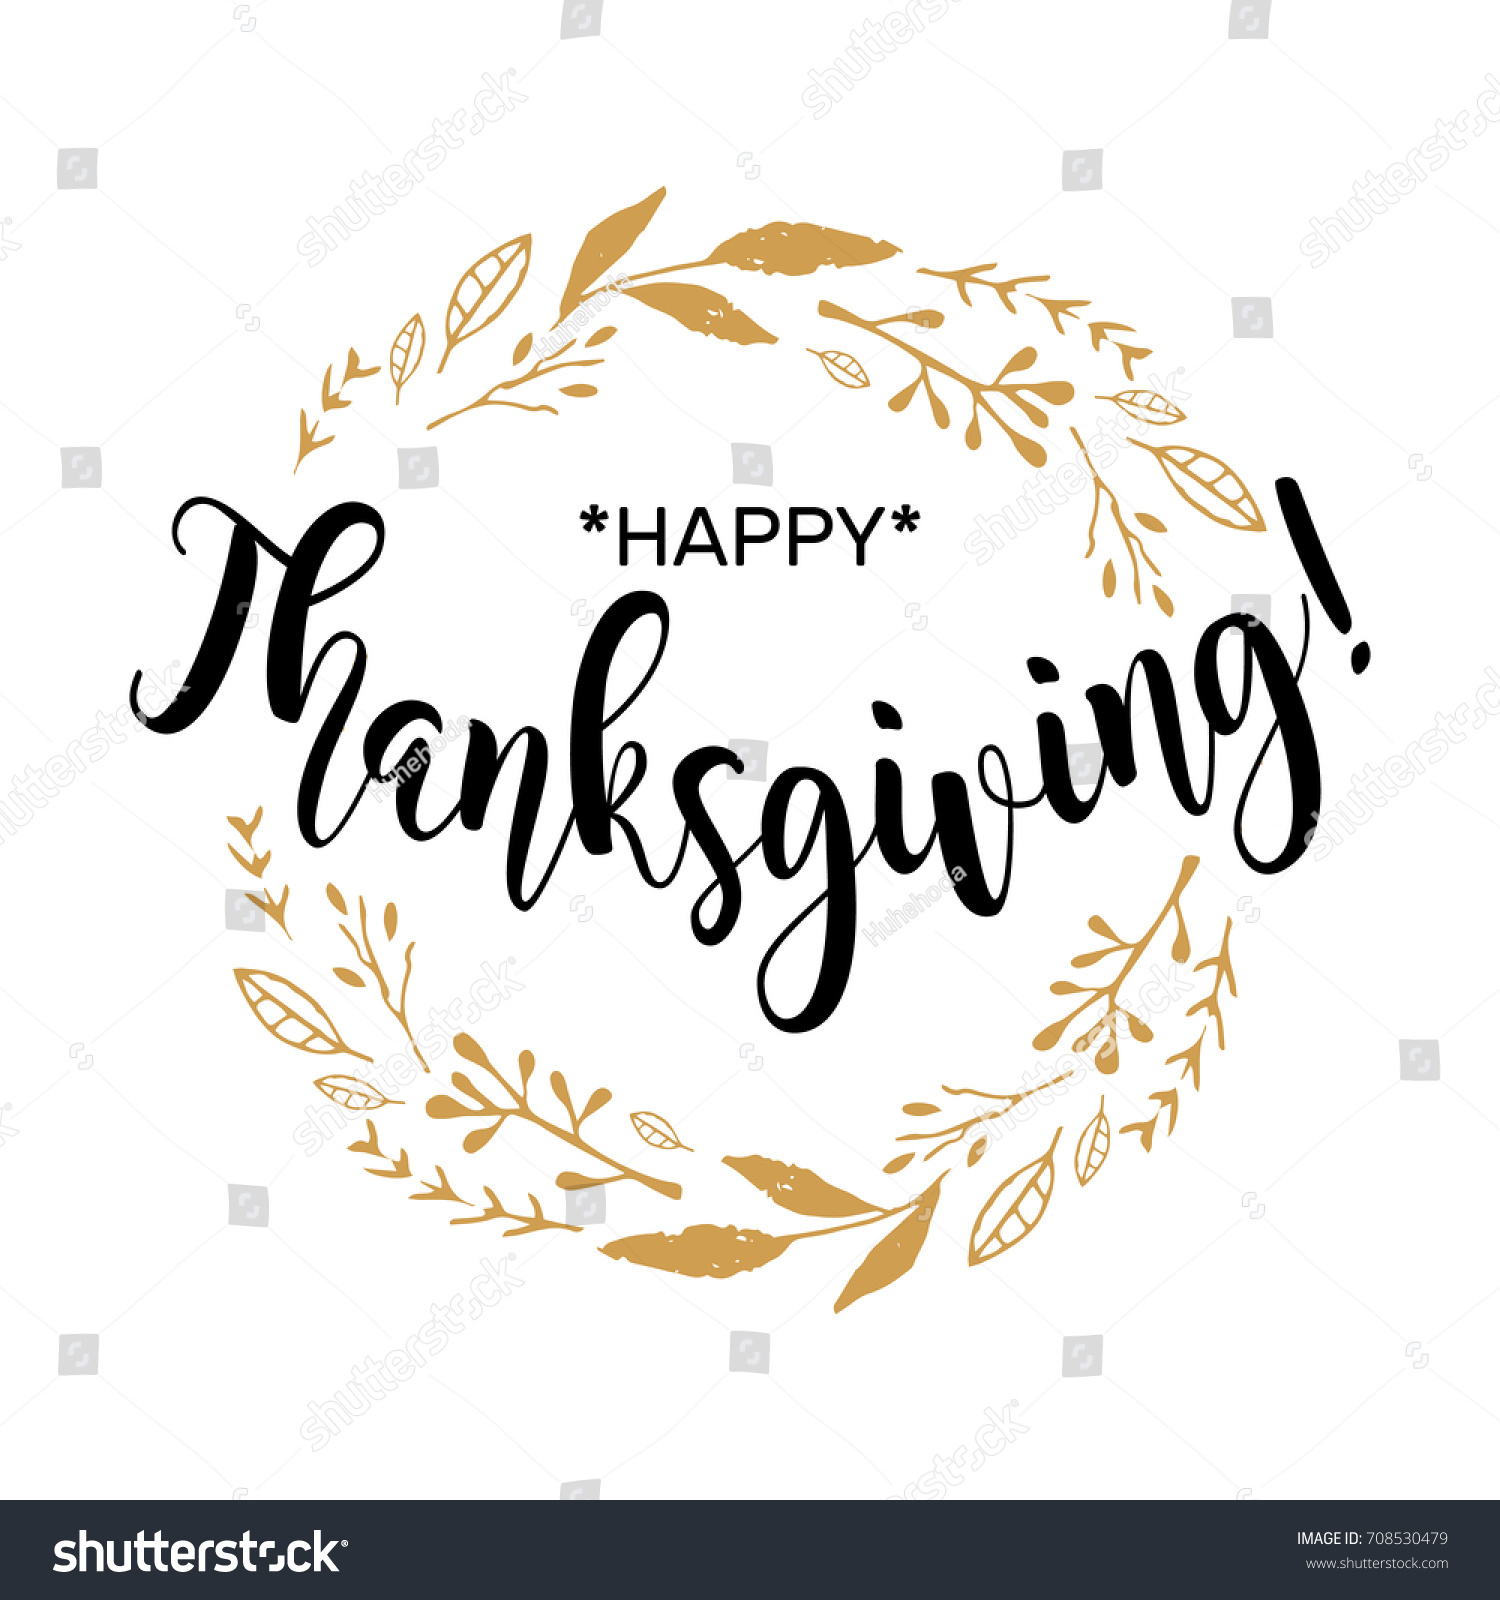 Happy thanksgiving beautiful greeting card calligraphy